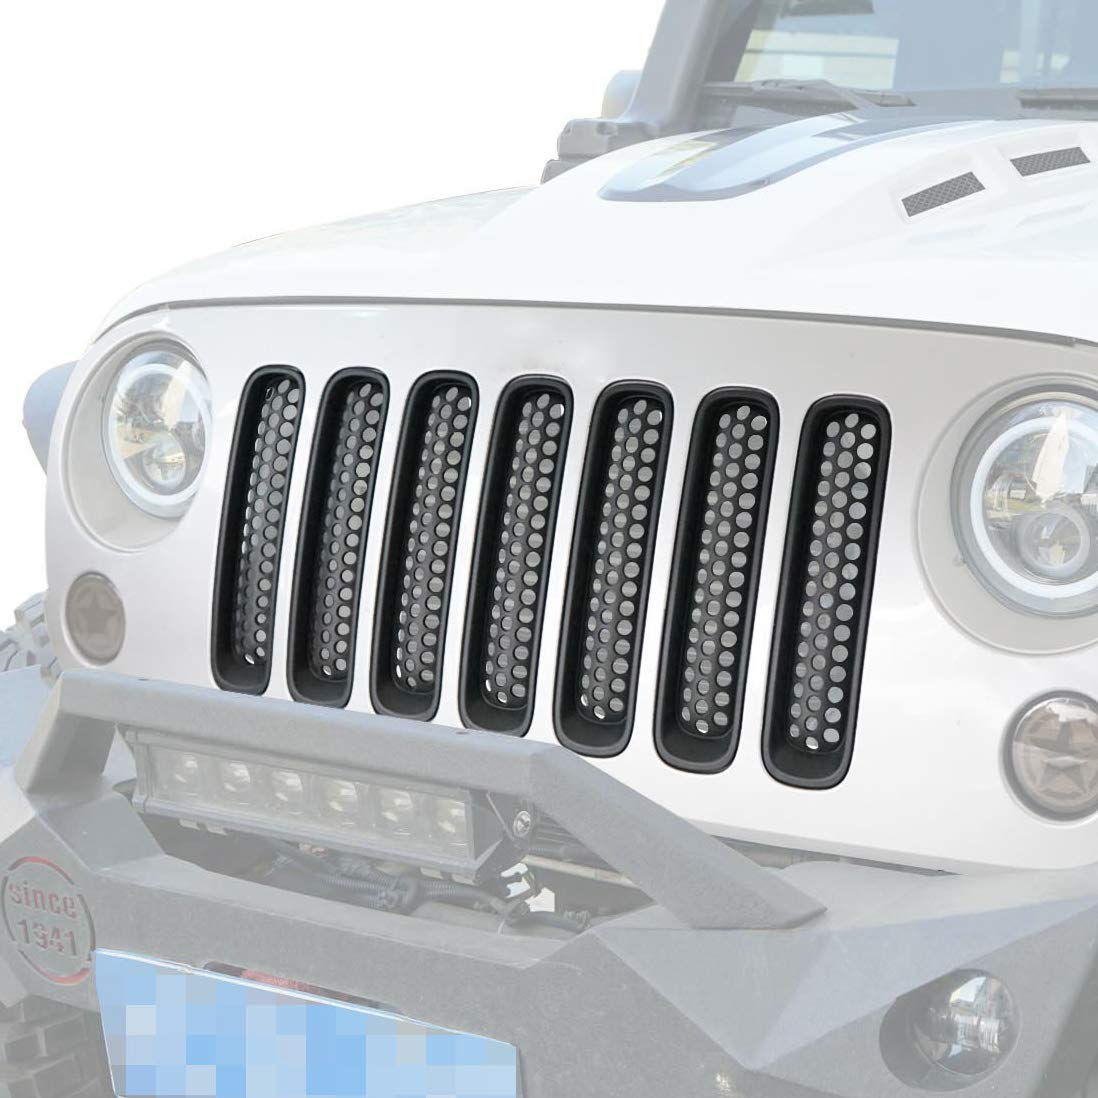 Small Ant Matte Black Clip-in Front Grille Mesh Inserts for Jeep JK Wrangler /& Wrangler Unlimited 2007-2015 Pack of 7